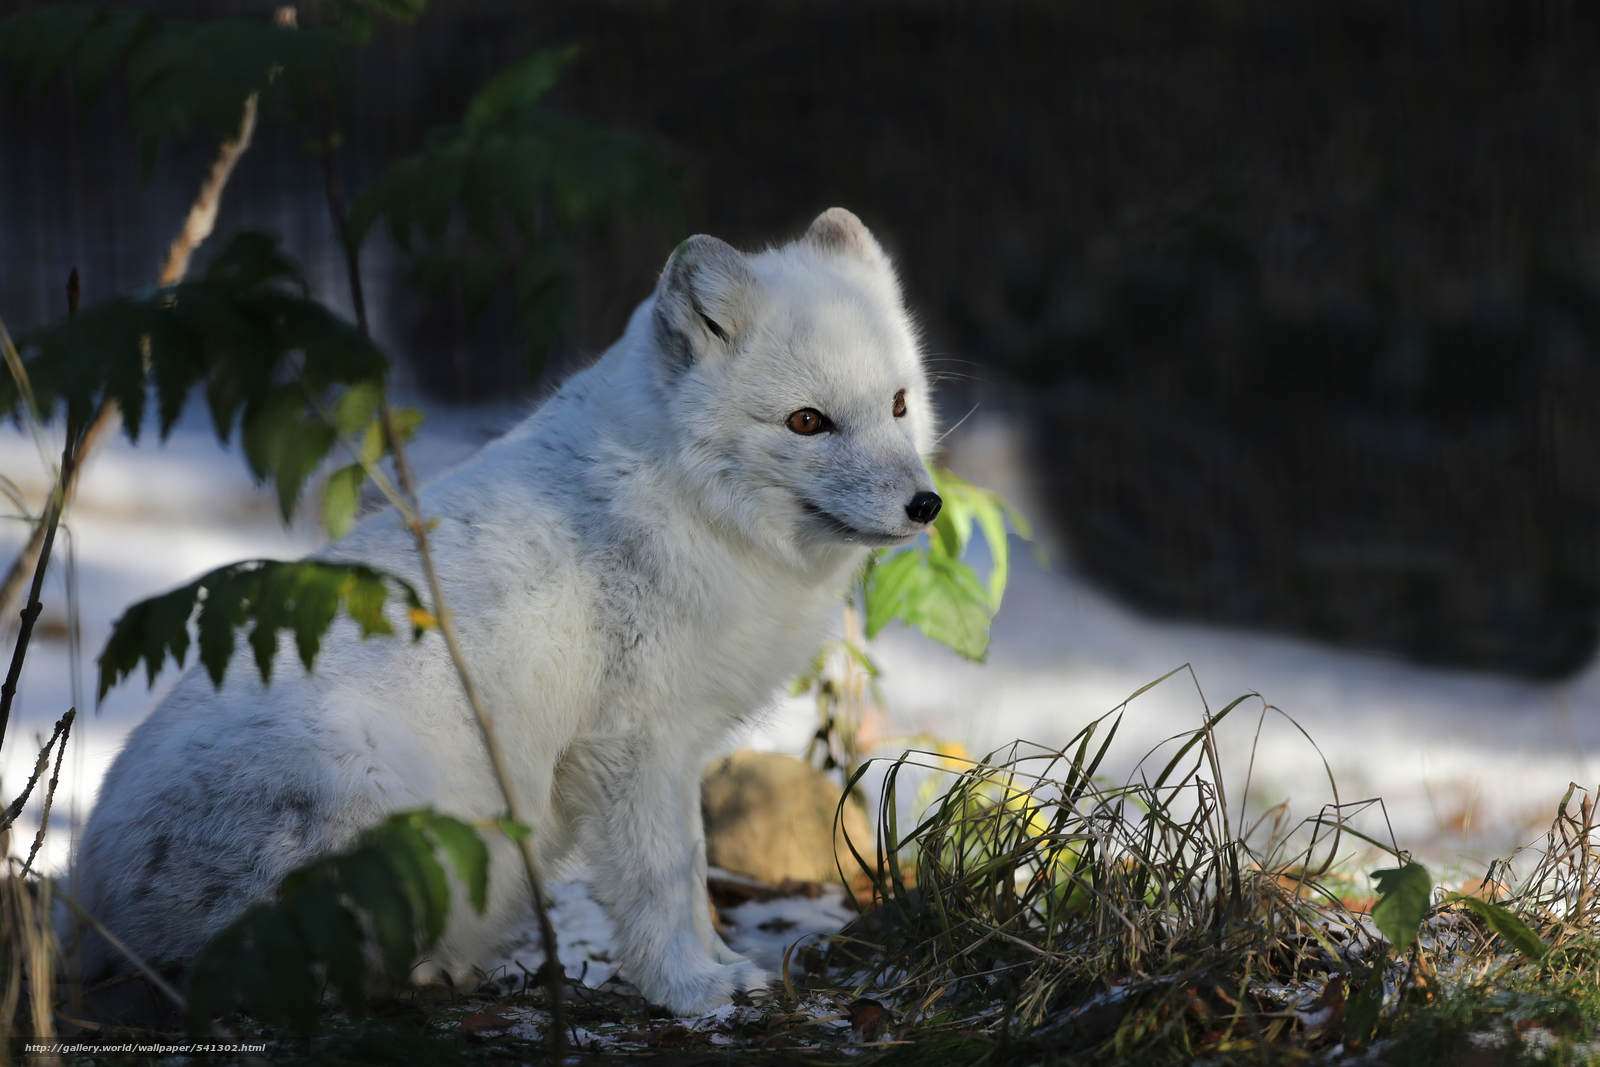 Arctic Fox moreover 414753446917507734 as well Index also IfEaT7Gb8mNEs together with RED 20FOX 20 SILVER 20PHASE. on arctic fox